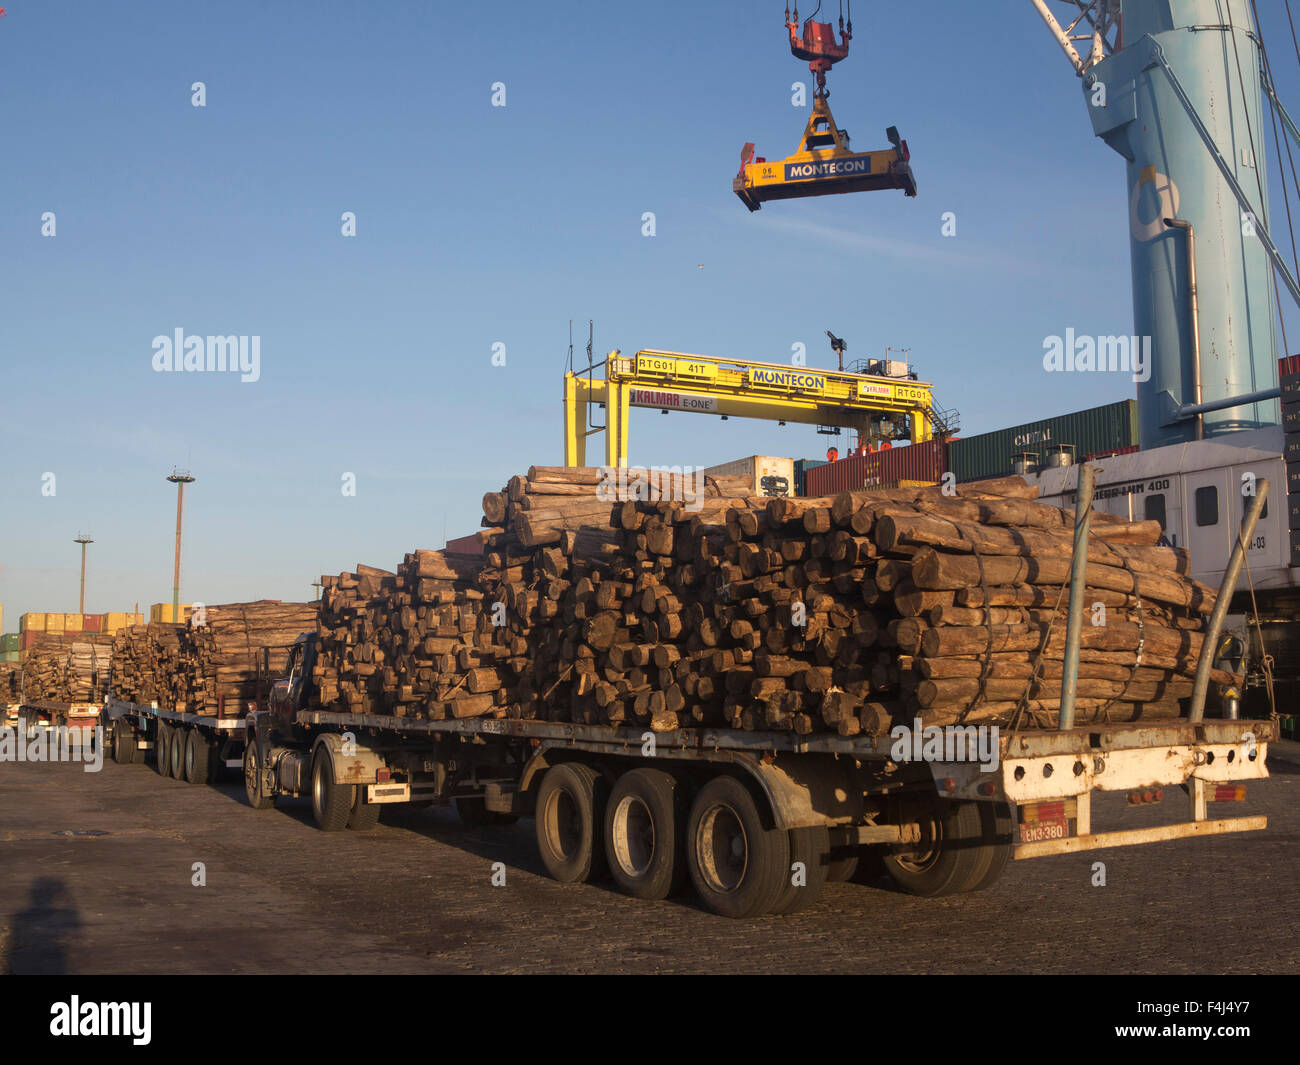 Timber loaded for export at the harbour in Montevideo, Uruguay, South America - Stock Image